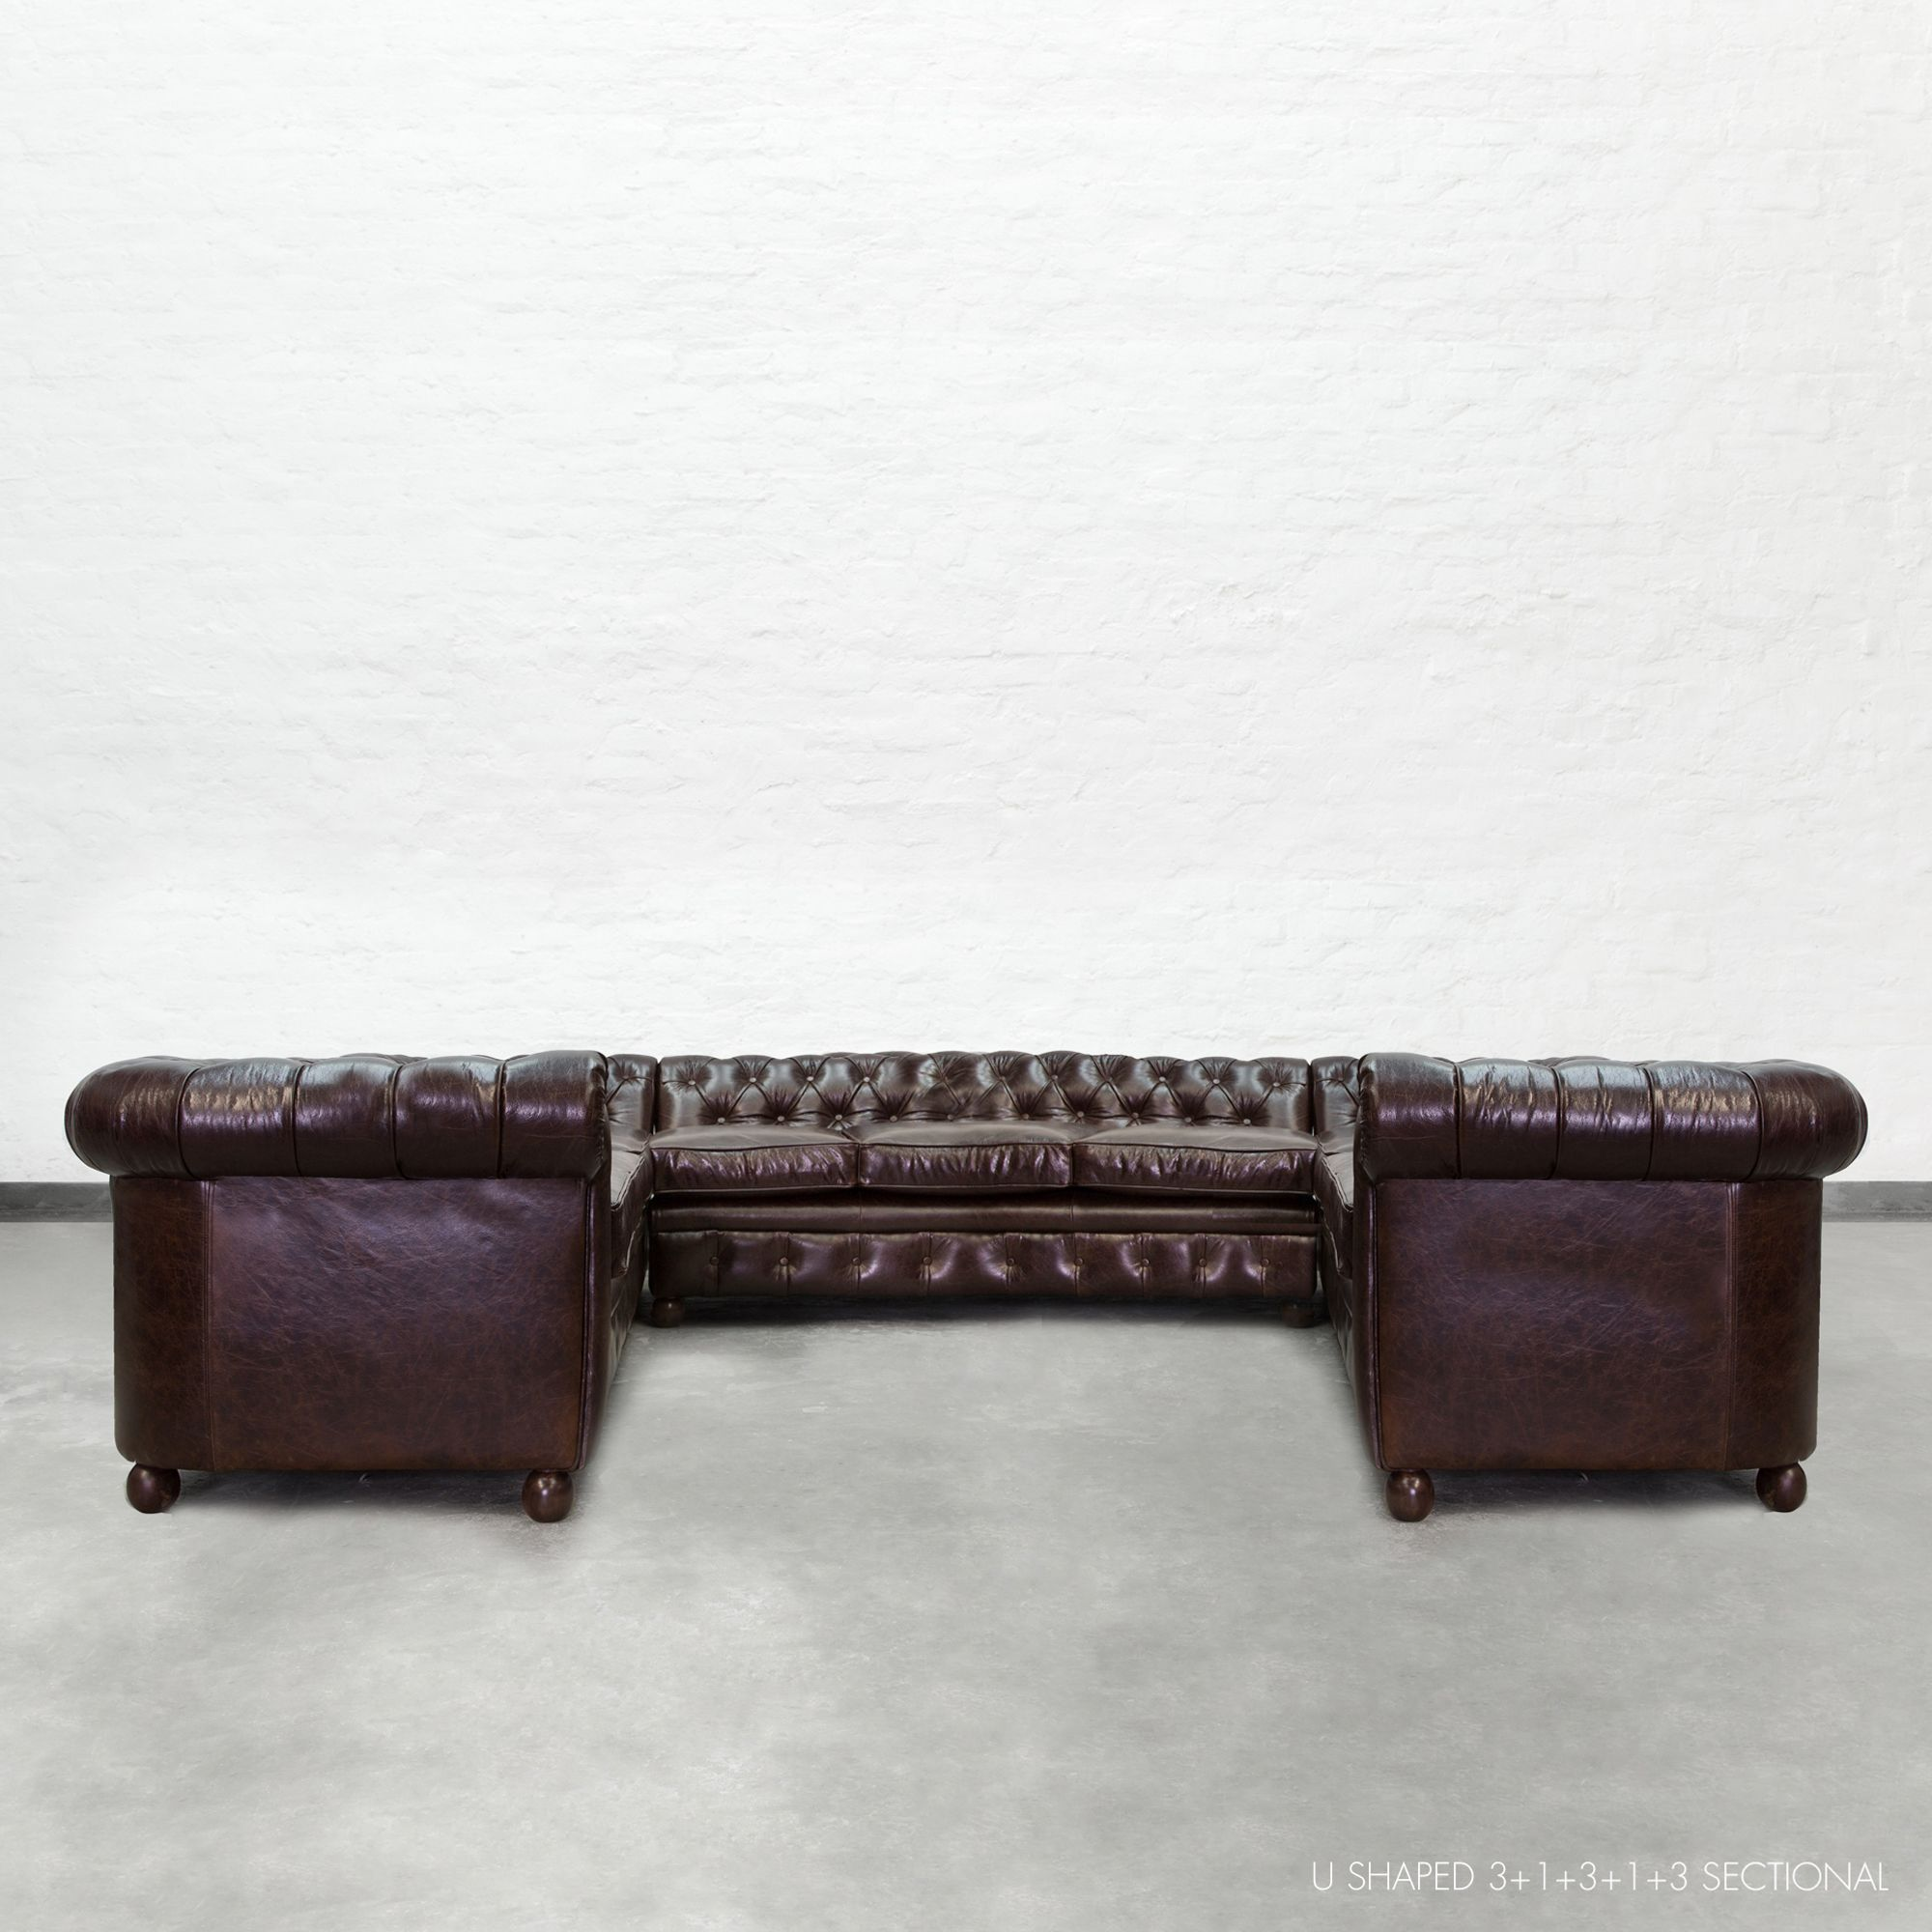 U Shaped Chesterfield Sectional Large 3+1+3+1+3